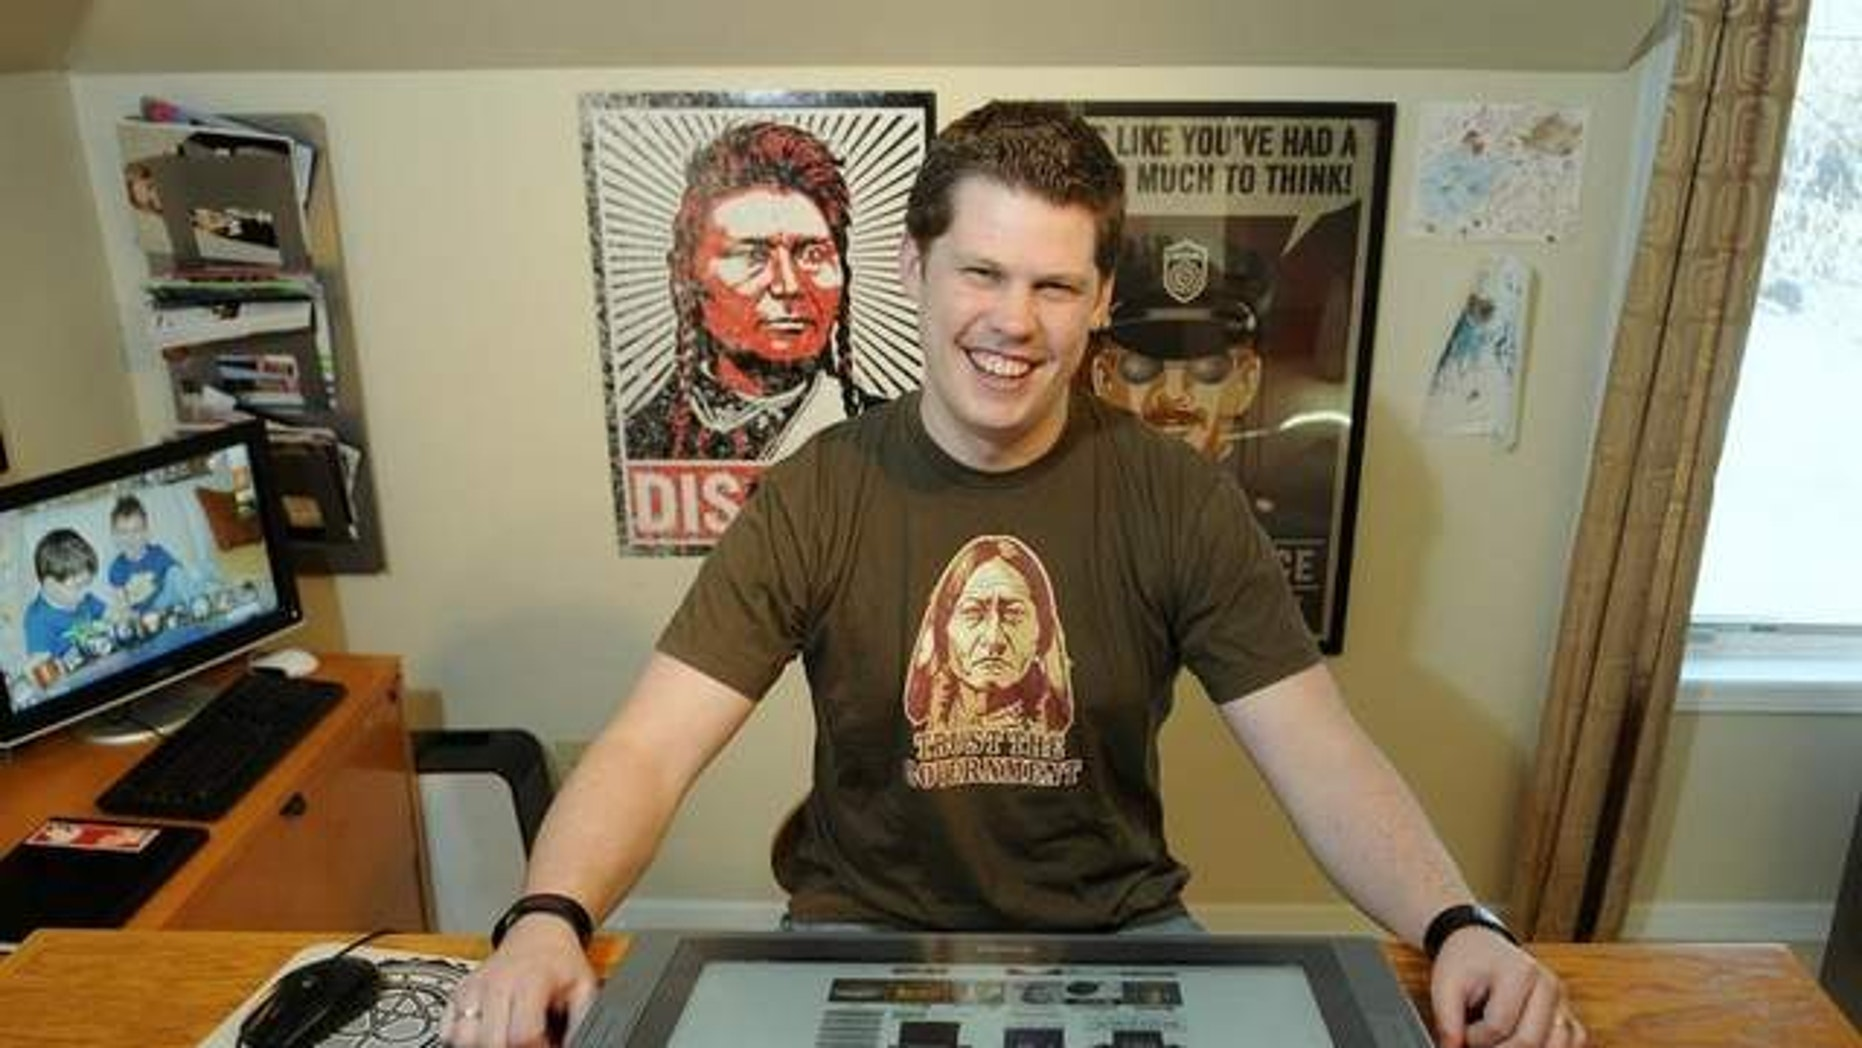 FILE: Nov. 29, 2011: Dan McCall is photogrpahed in his home in Sauk Rapids, Minn. Federal authorities have dropped an attempt to stop a Minnesota man from marketing merchandise poking fun at the National Security Agency for its surveillance of citizens.